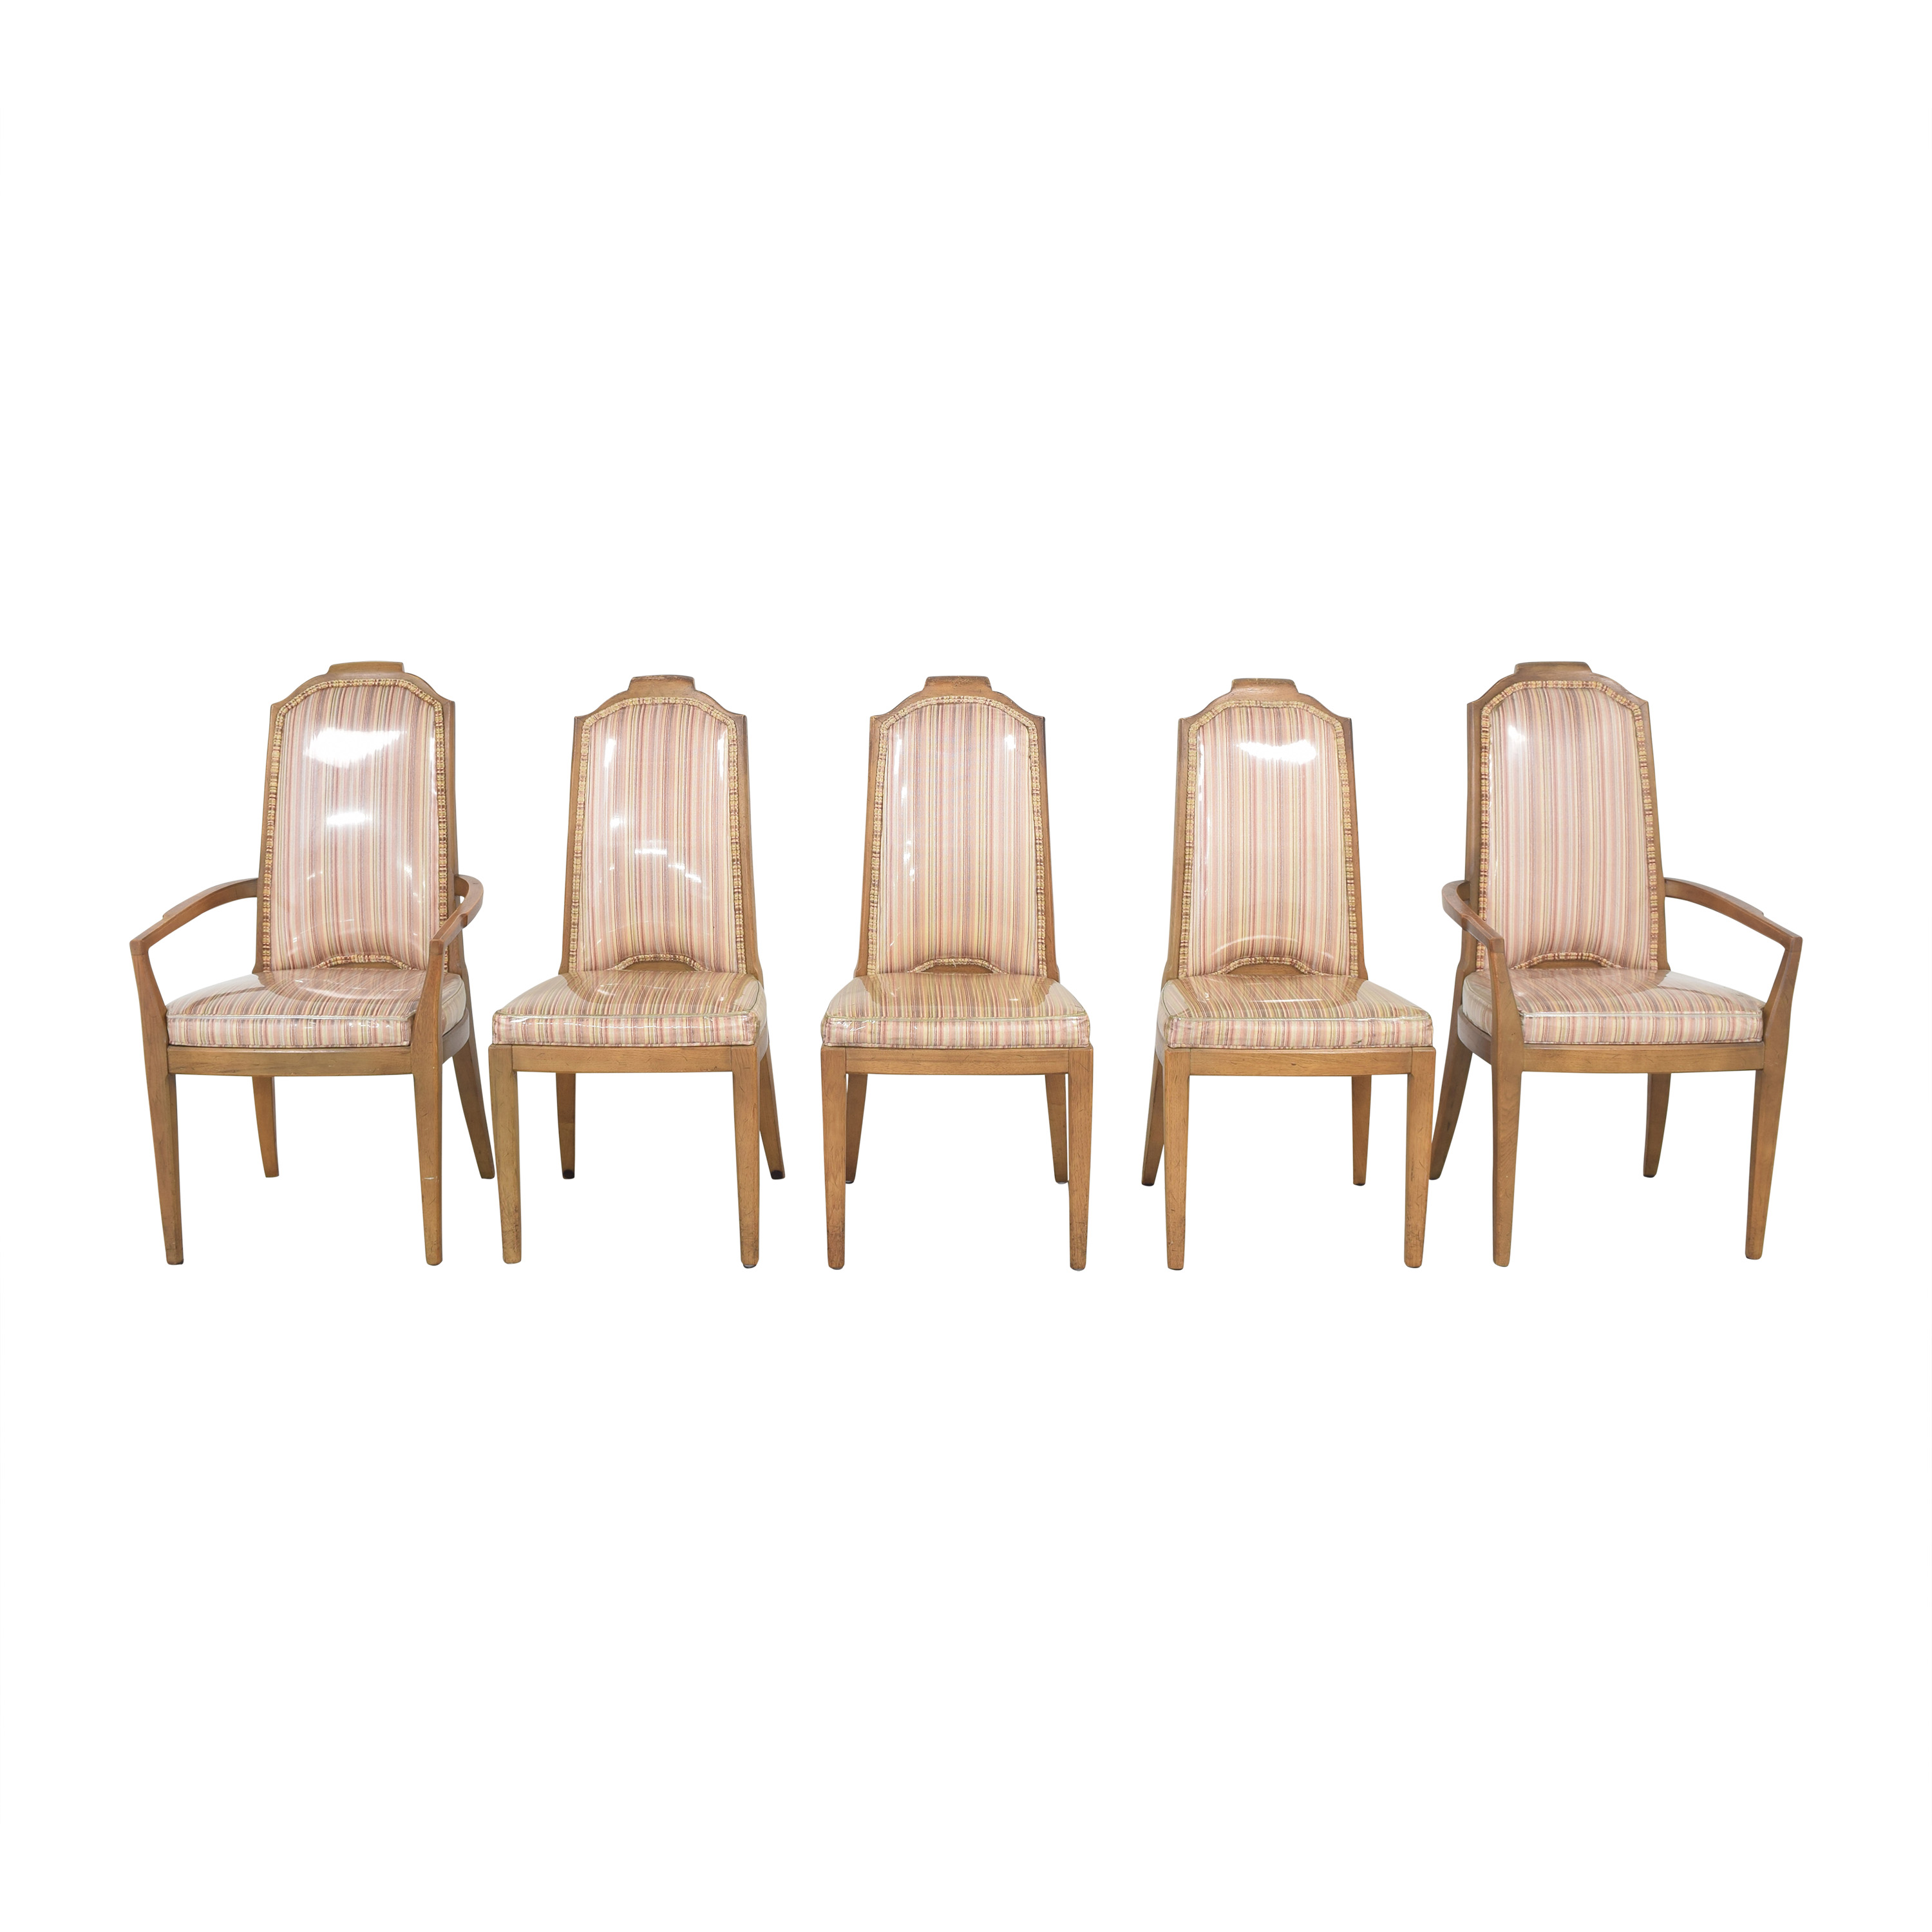 Drexel Drexel Stripe Upholstered Dining Chairs